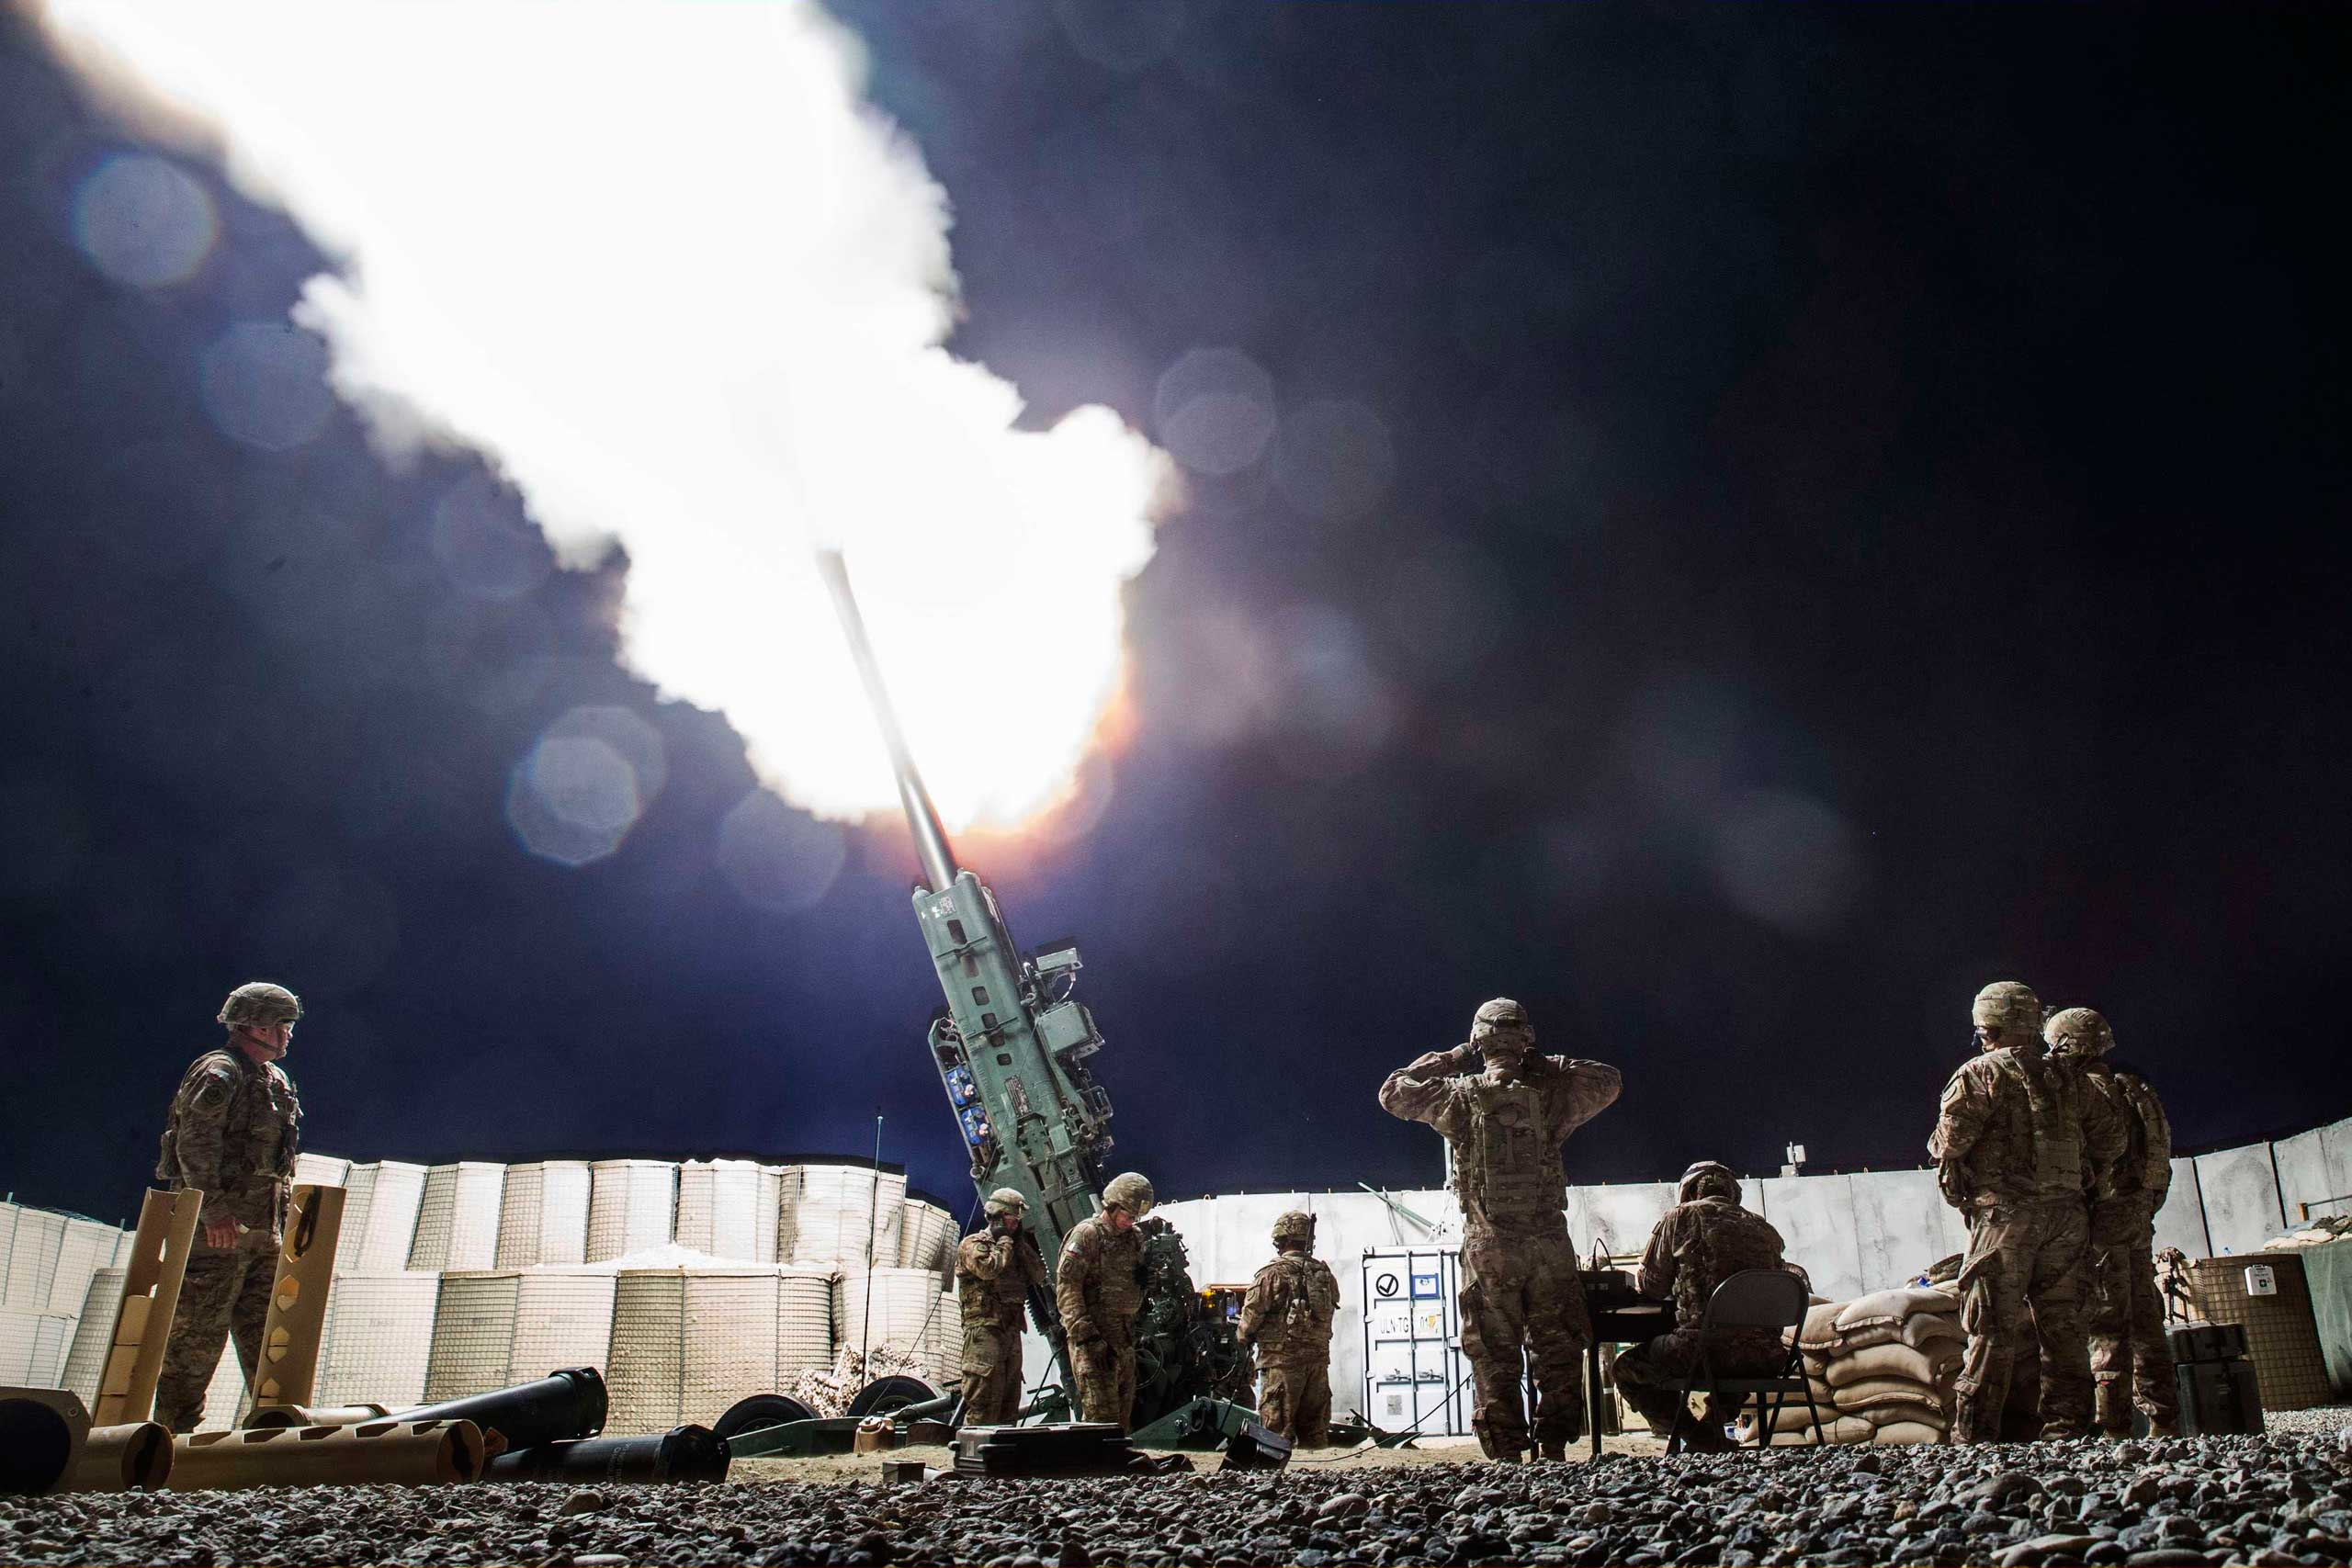 U.S. soldiers from the 3rd Cavalry Regiment take part in an artillery exercise on forward operating base Gamberi in the Laghman province of Afghanistan on Dec. 24, 2014.